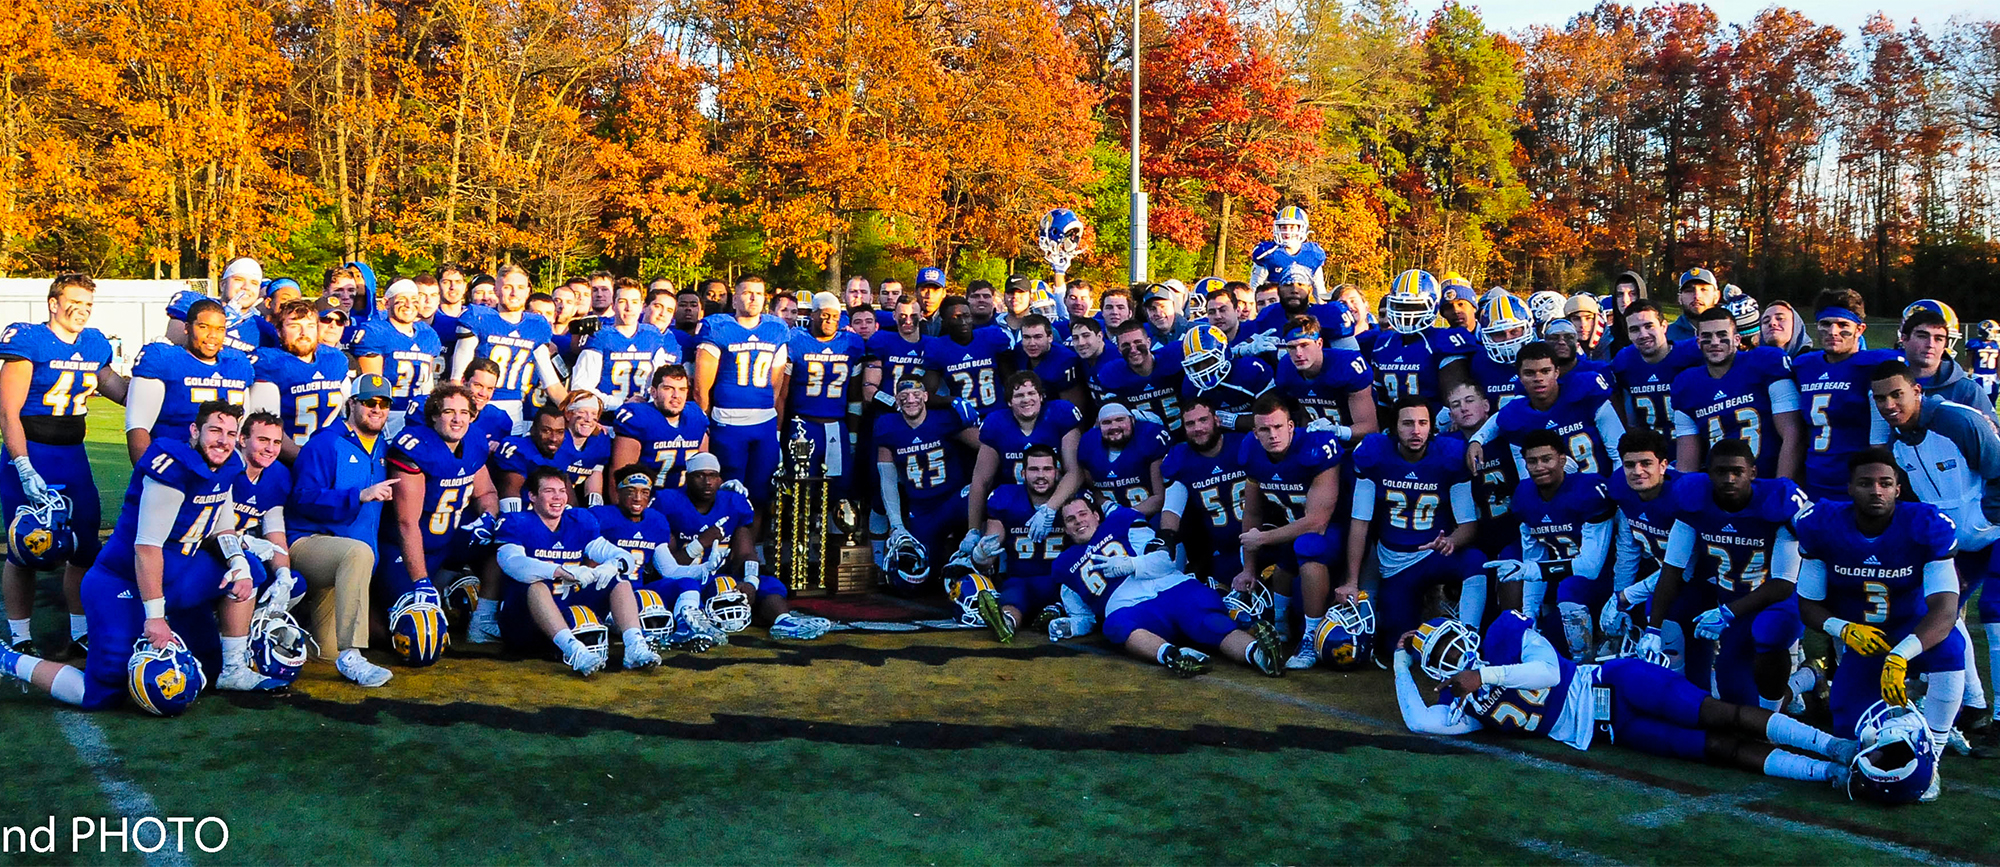 Western New England Completes Second Straight Undefeated Regular Season with 36-29 Victory over Coast Guard